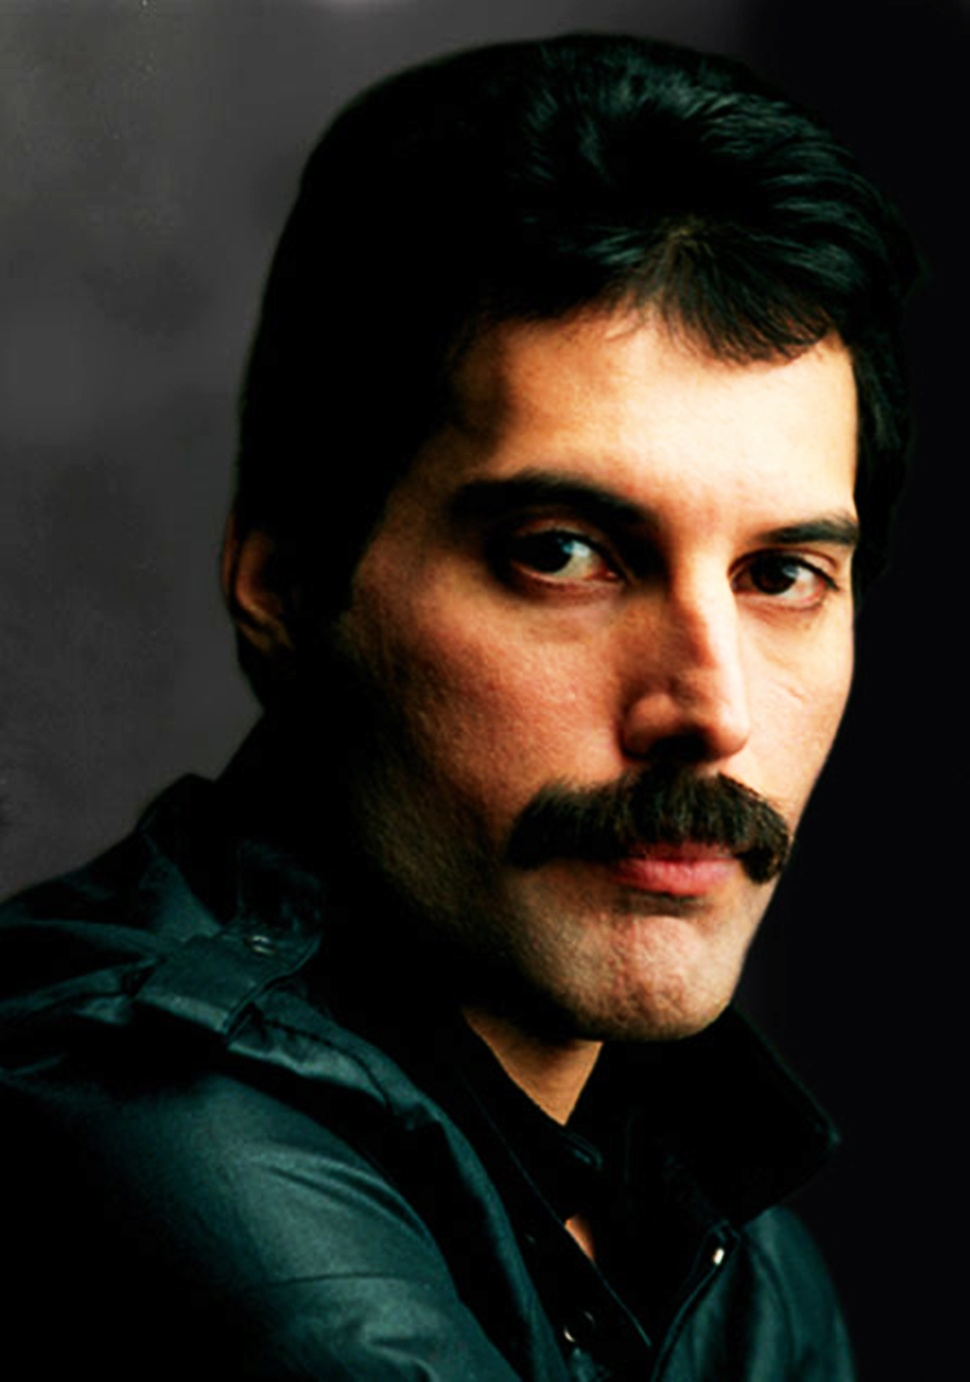 freddie mercury - photo #4